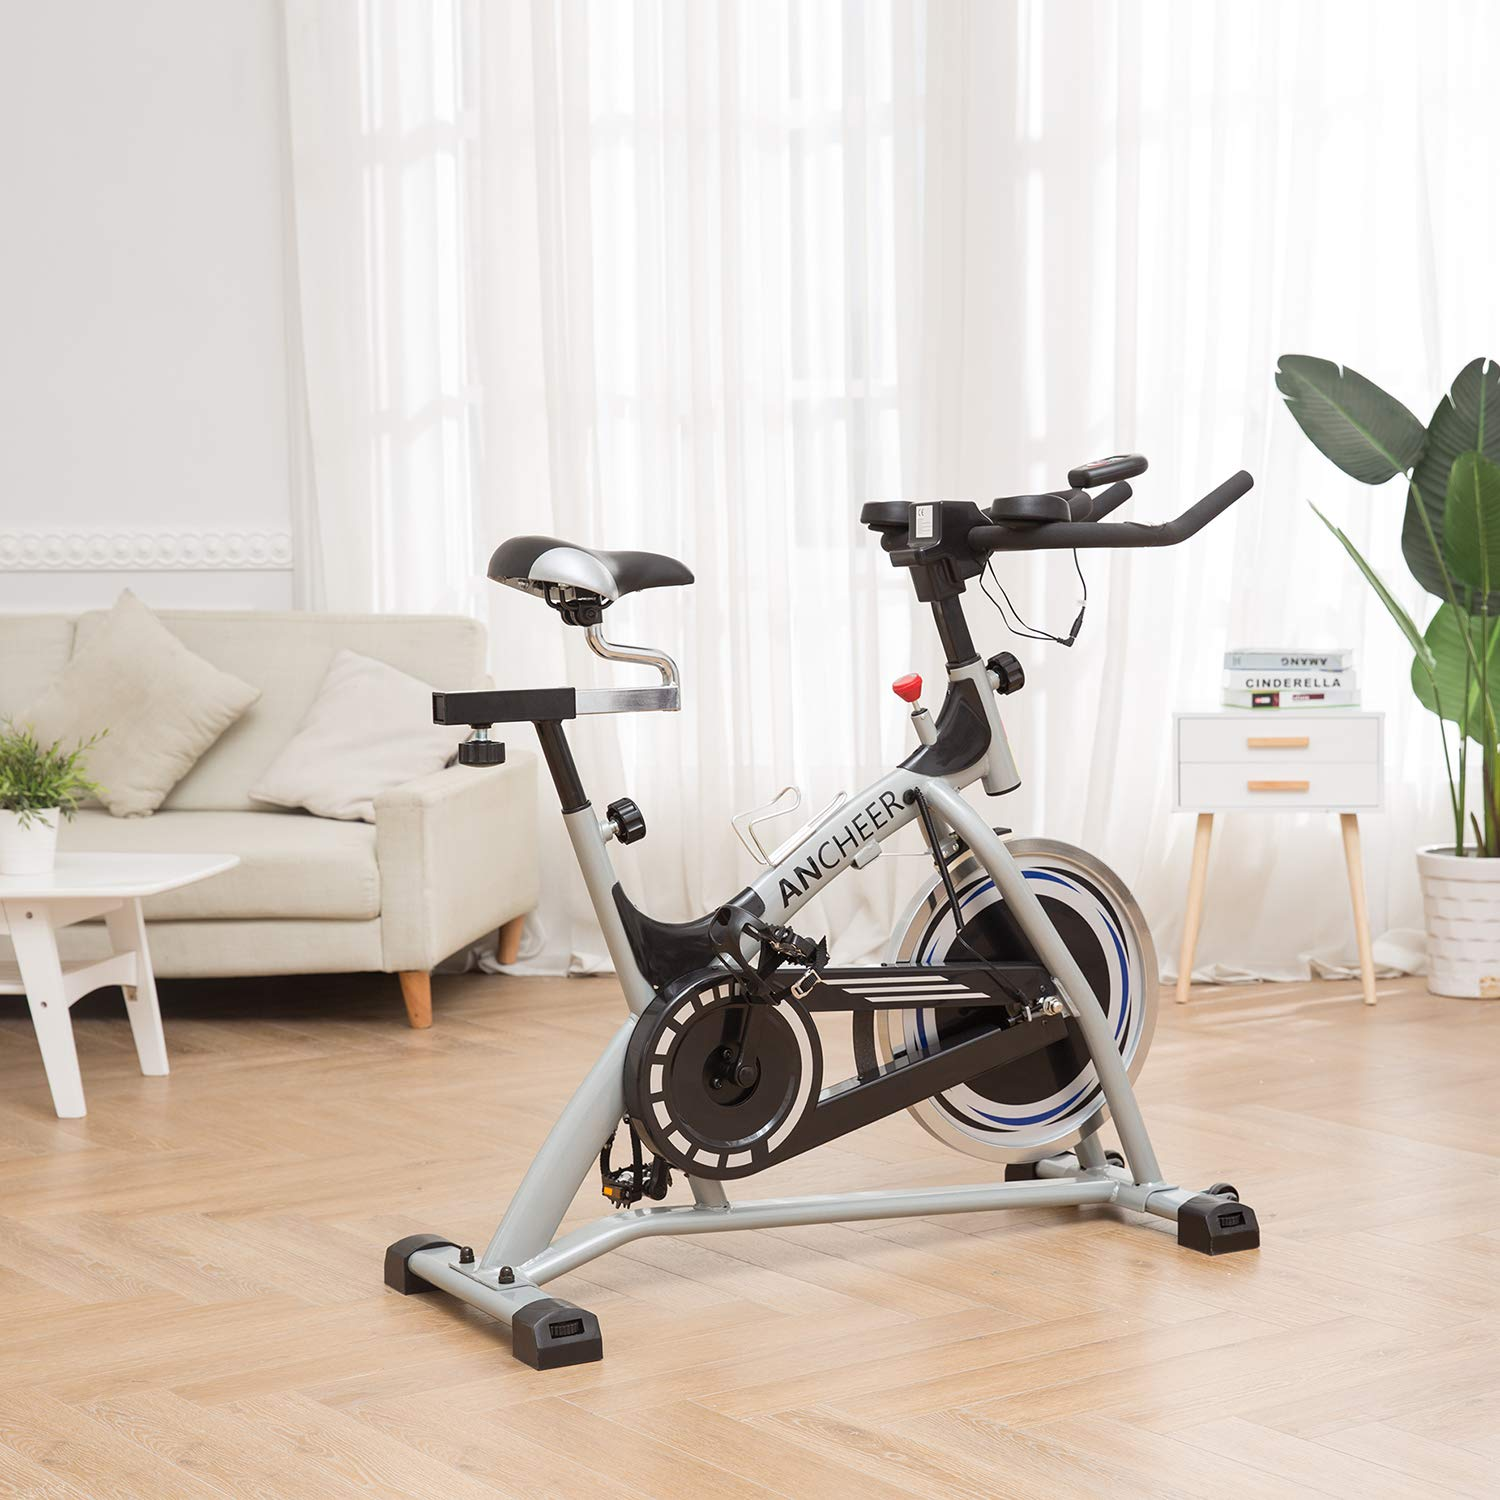 ANCHEER Stationary Bike, 40 LBS Flywheel Belt Drive Indoor Cycling Exercise Bike with Pulse, Elbow Tray Model ANCHEER-A5001